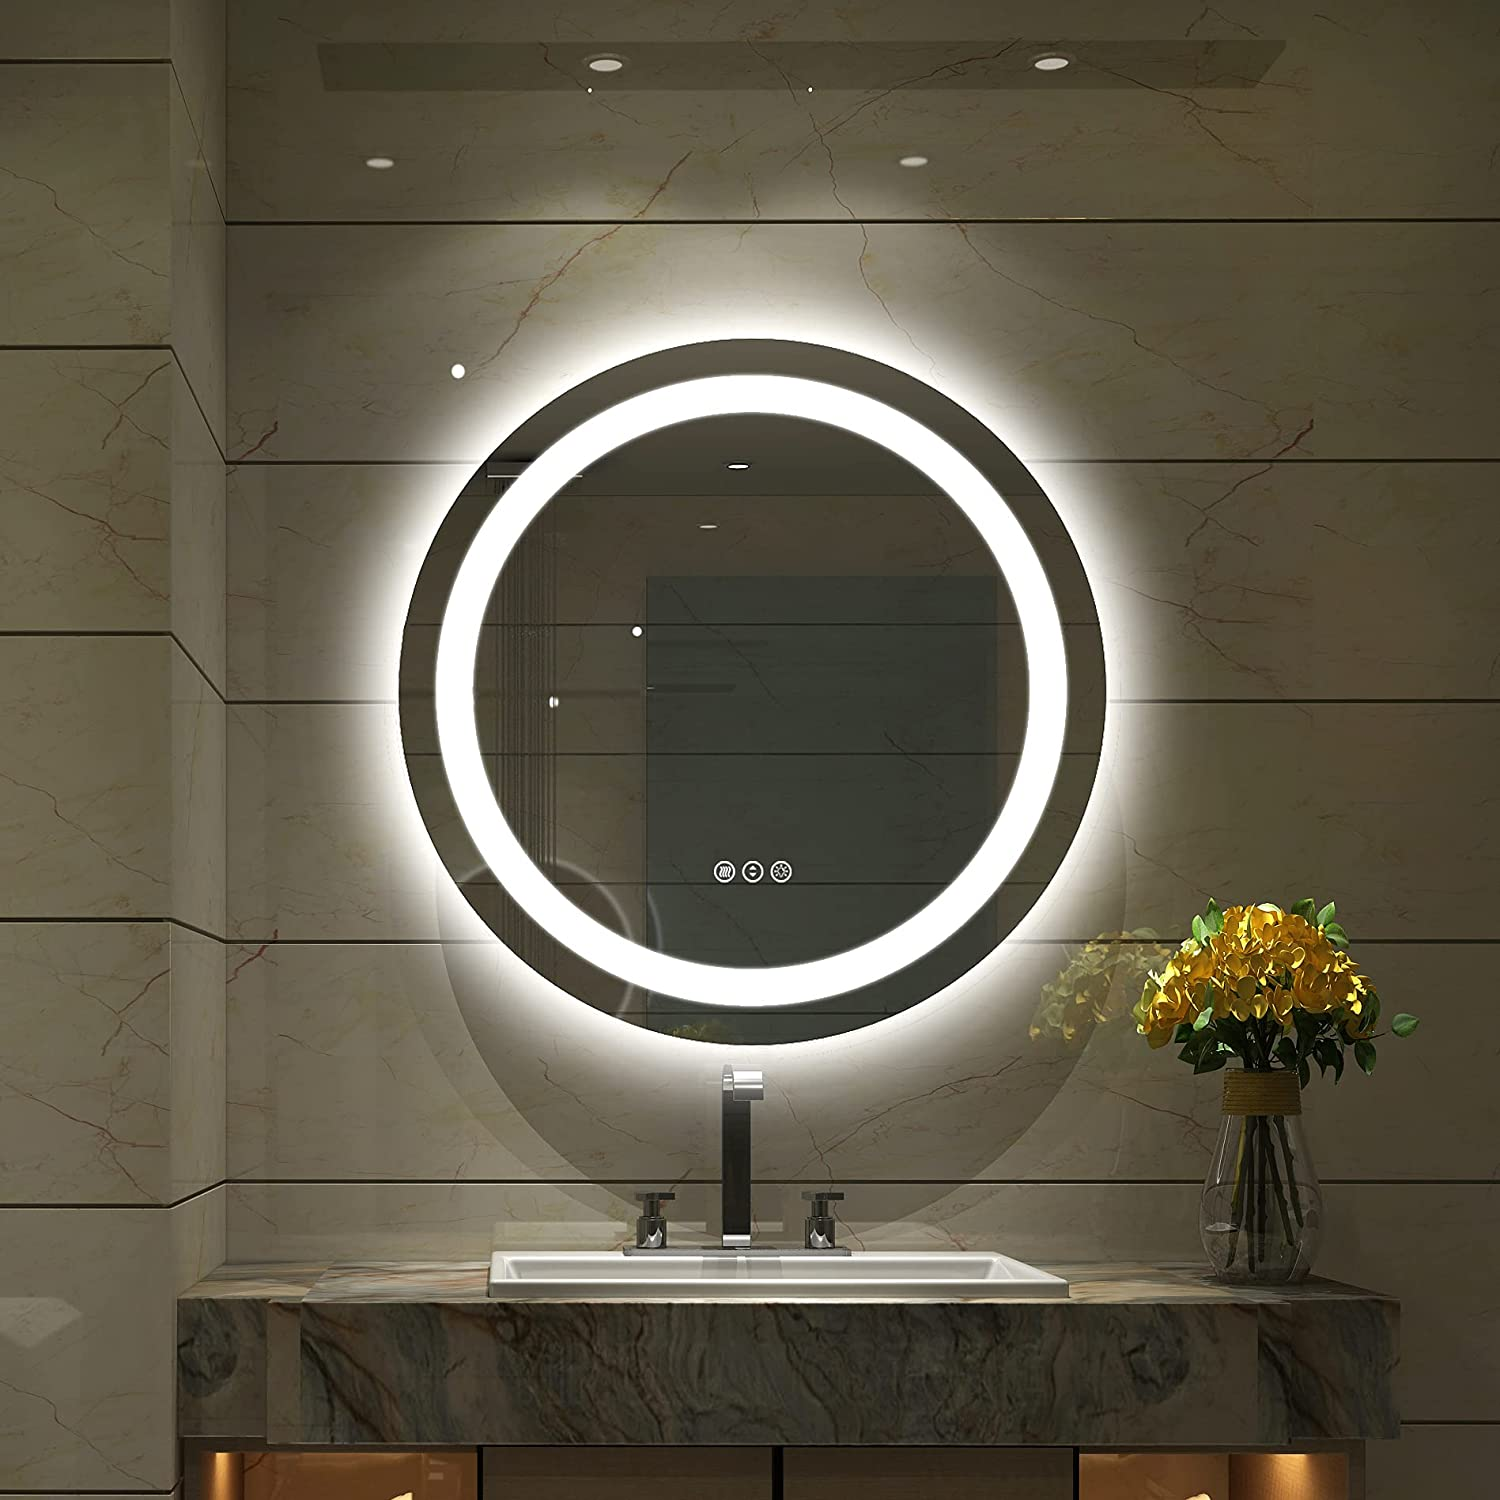 Amorho LED Bathroom Shipping included Mirror Circle 20 Daily bargain sale Round w Vanity Inch